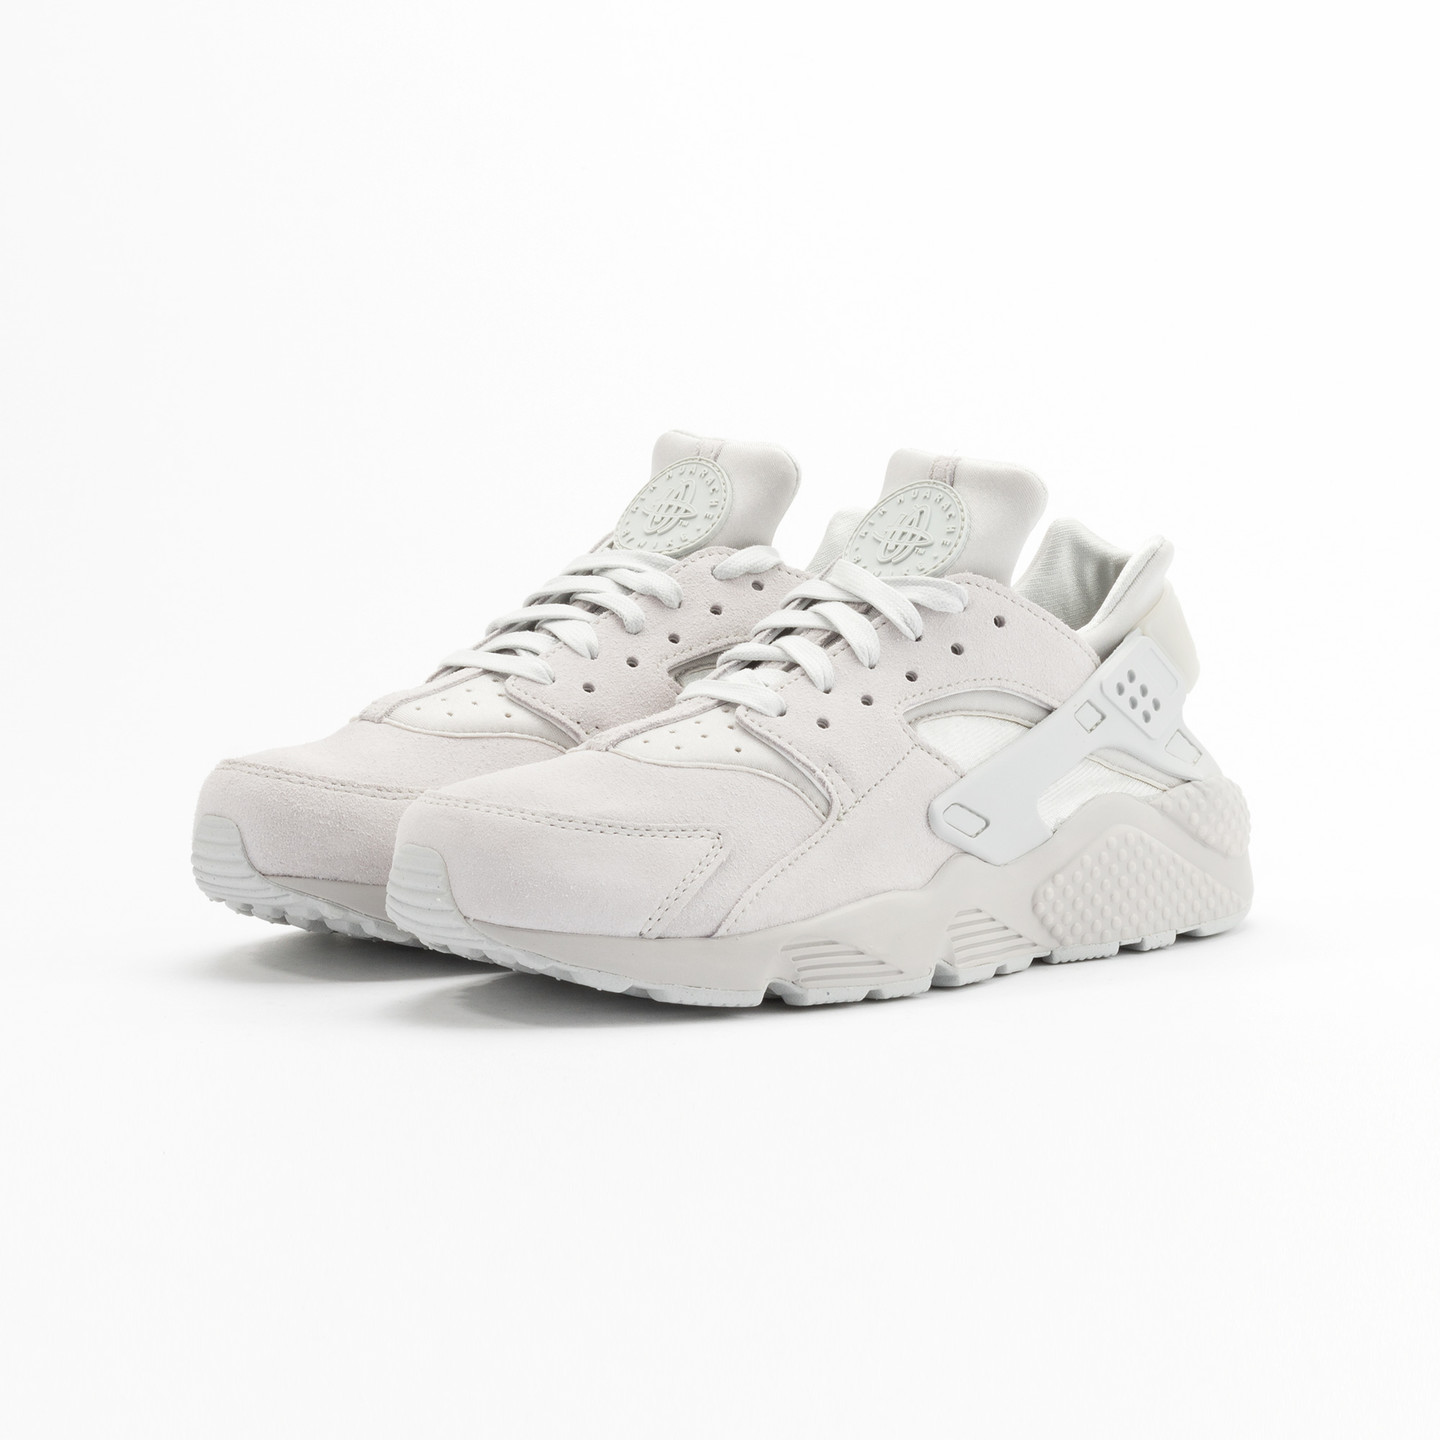 Nike Air Huarache Run Premium Neutral Grey 704830-005-39